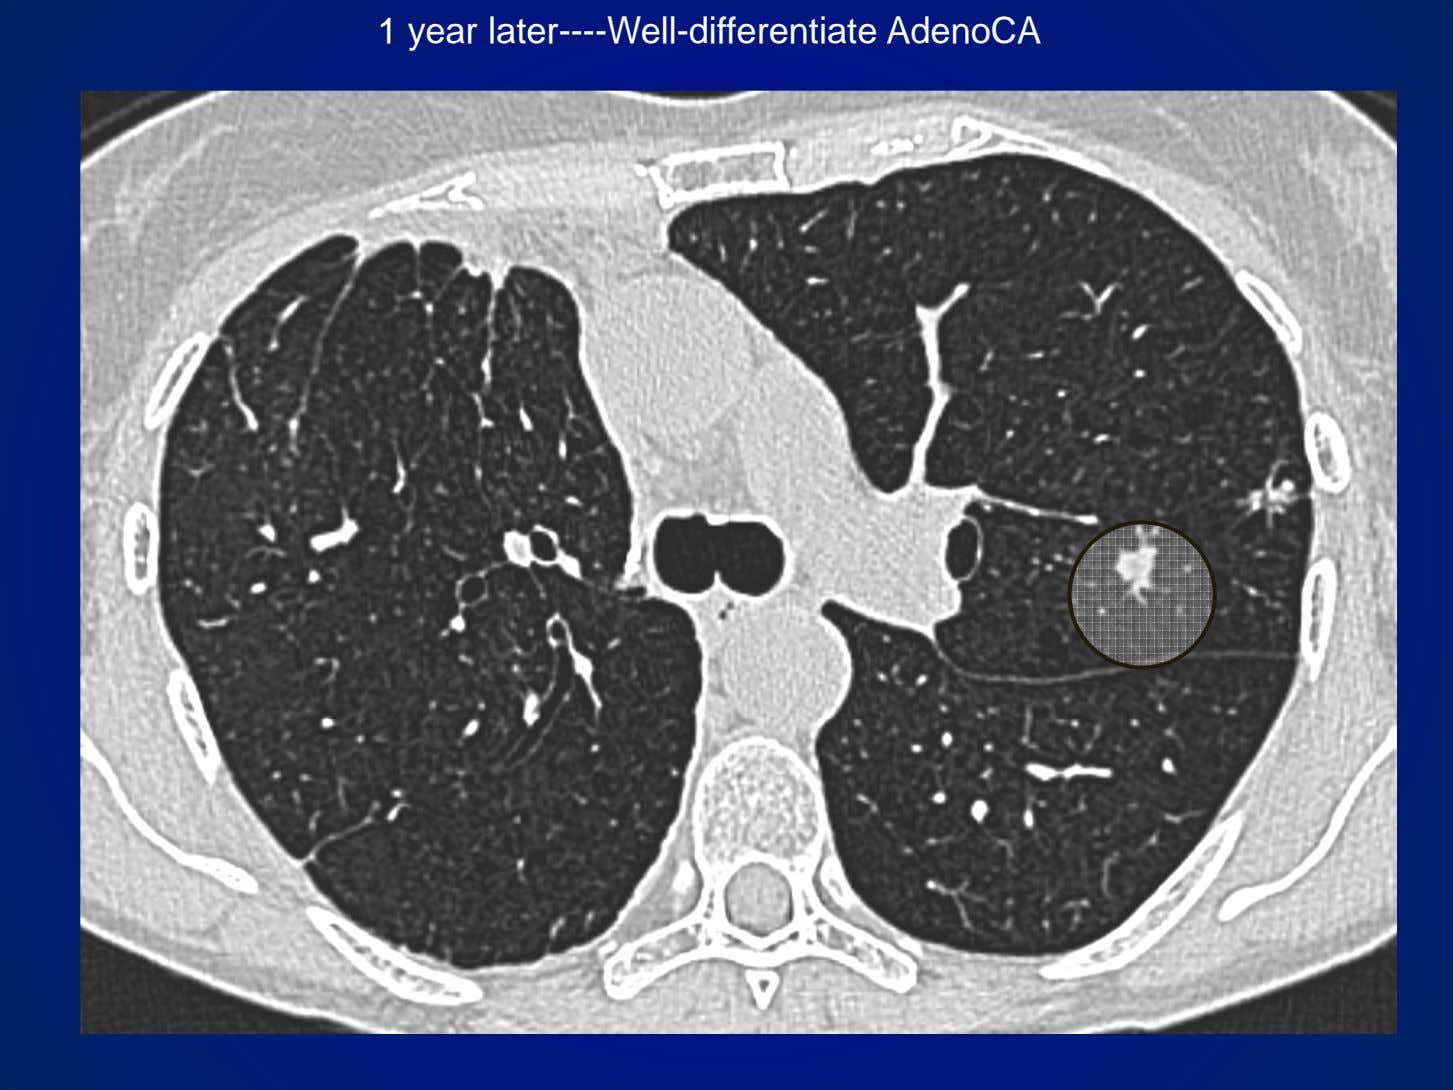 1 year later----Well-differentiate AdenoCA